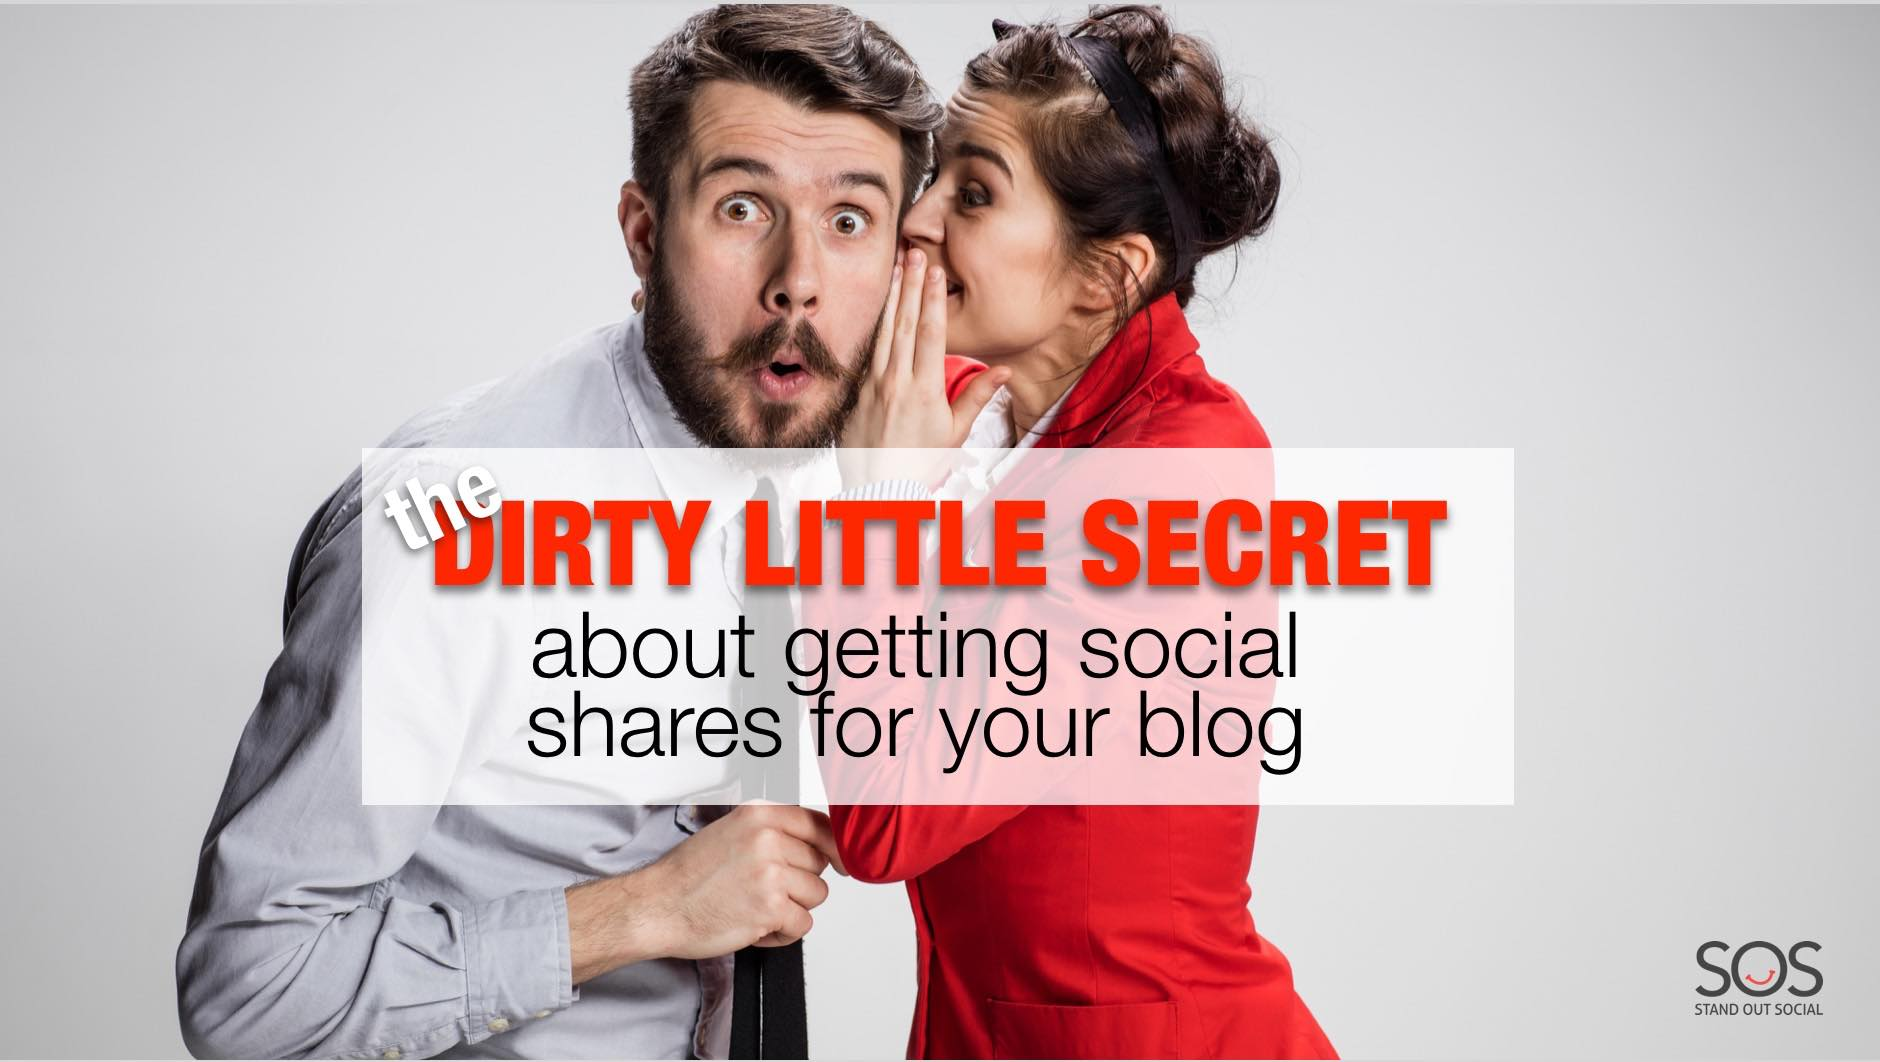 Getting social shares for your blog